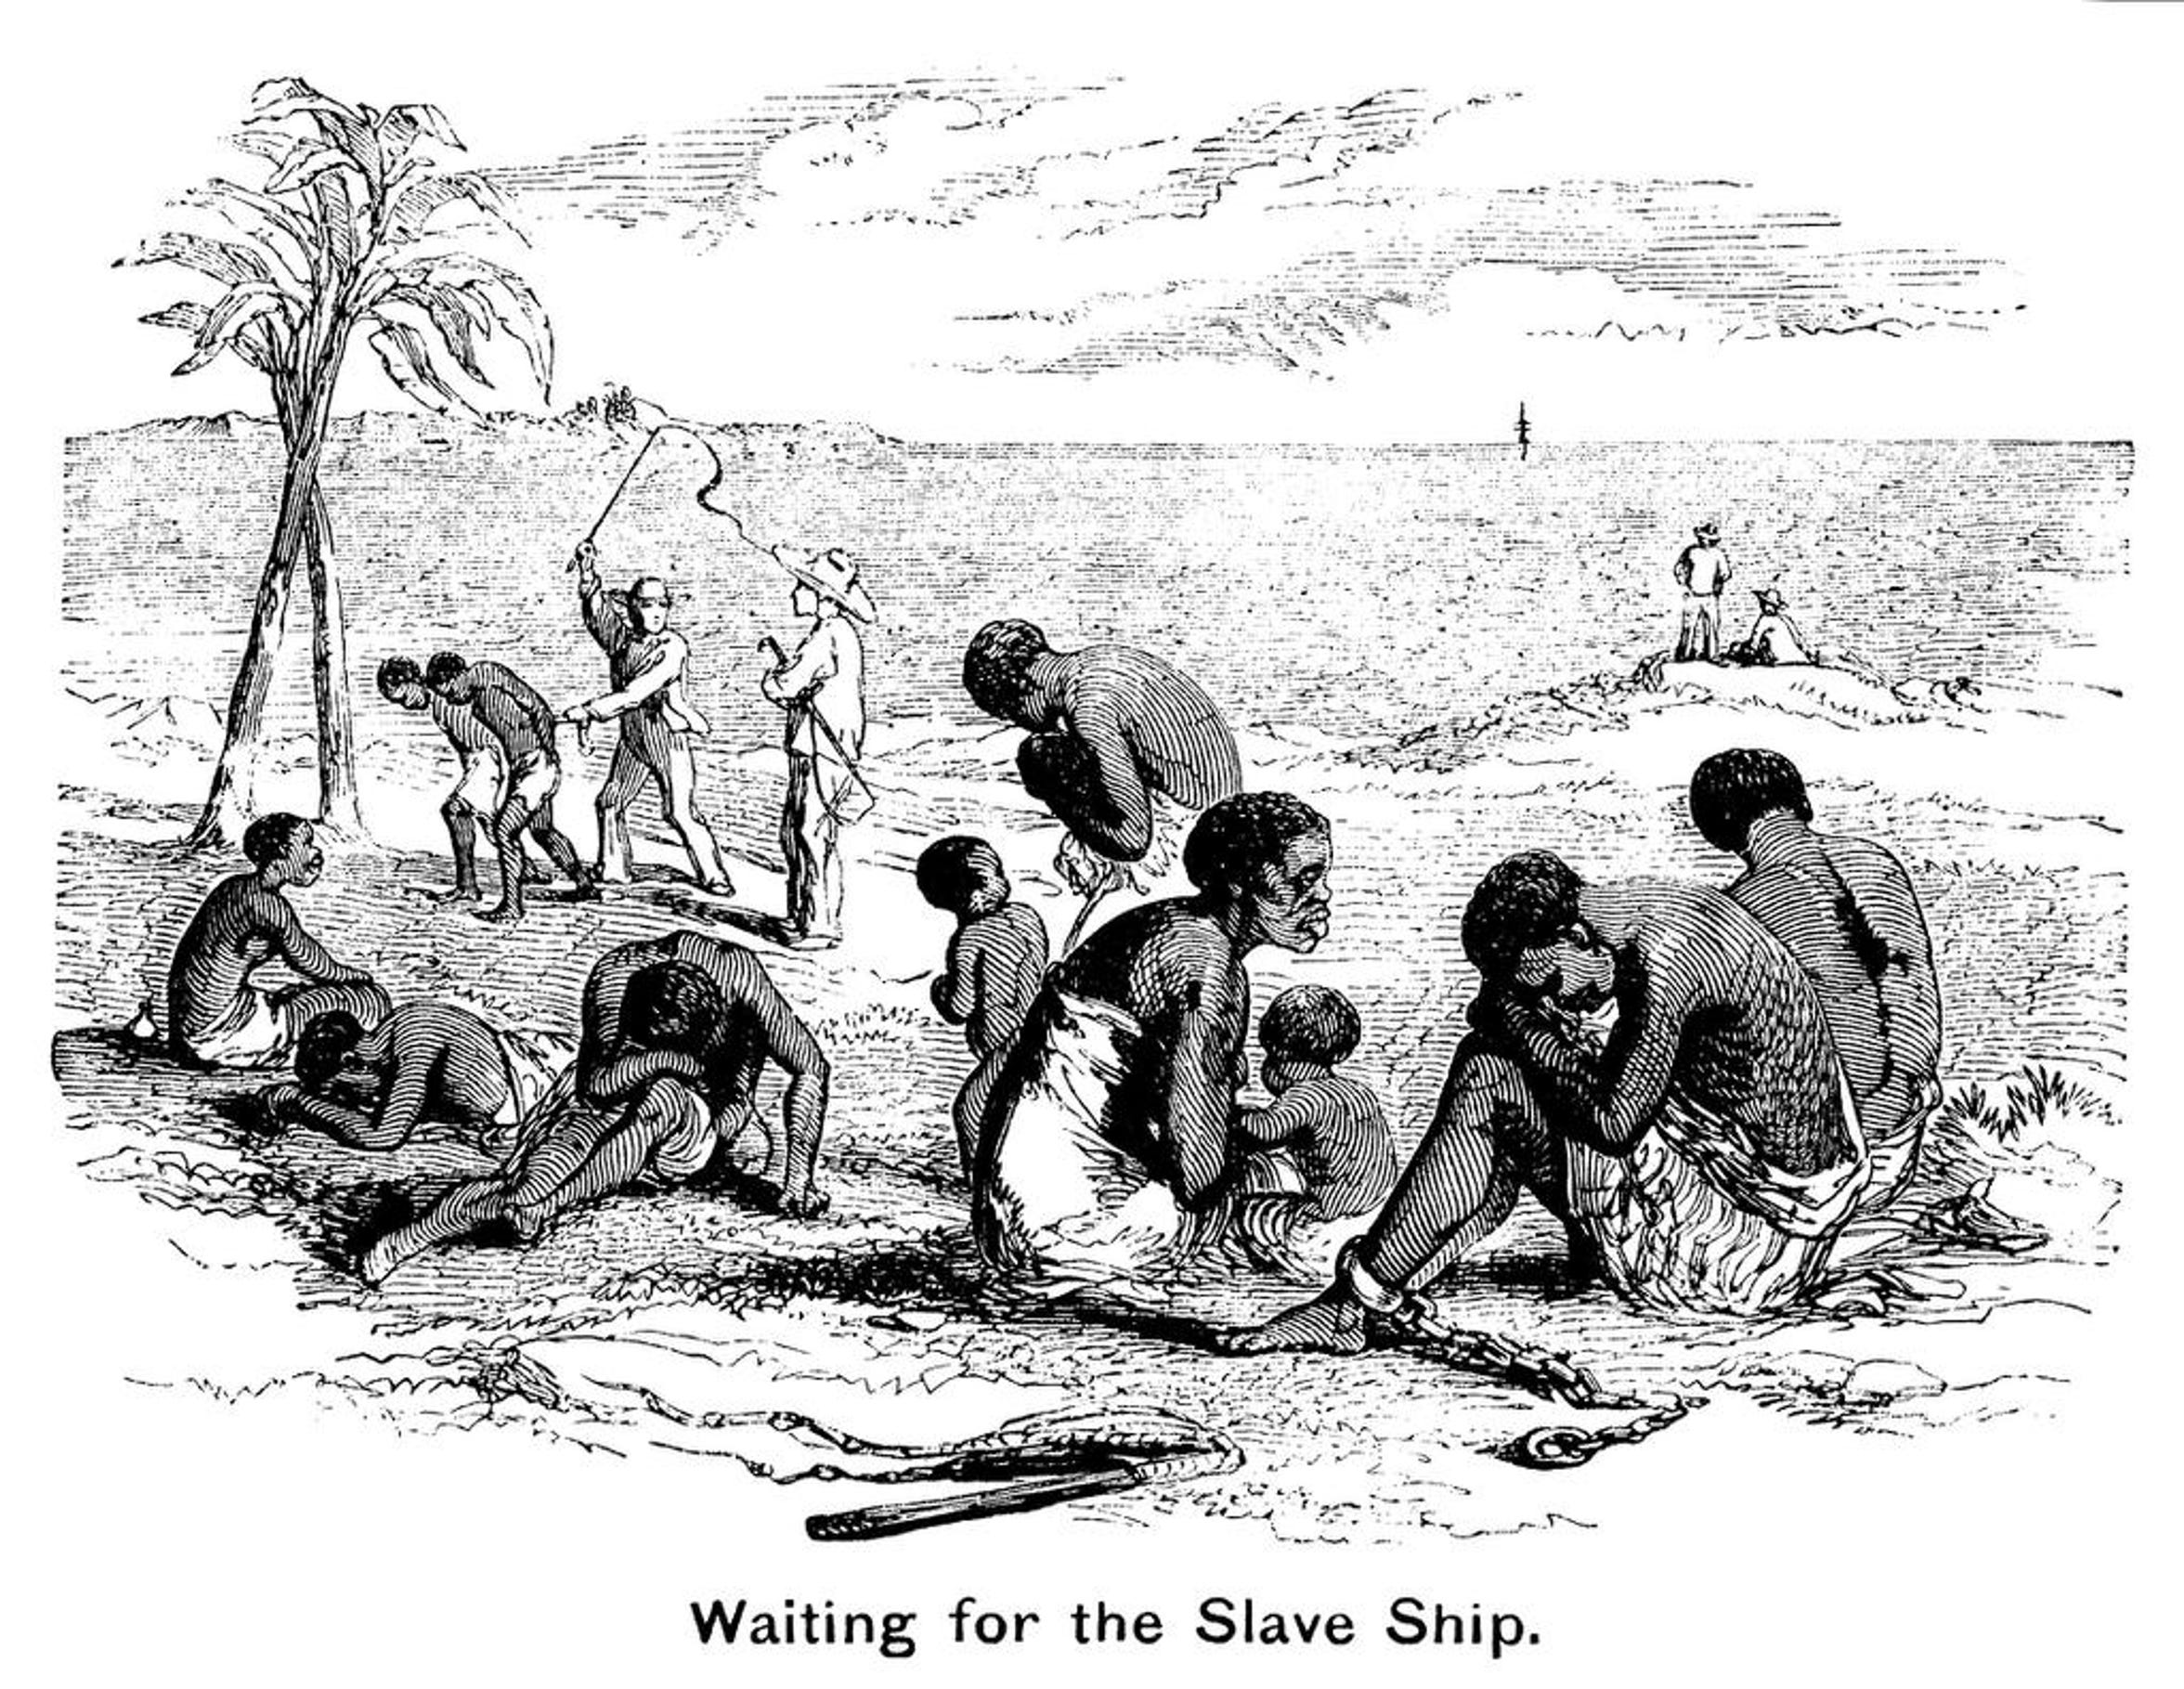 A drawing from a 19th-century religious tract shows captured Africans herded onto the beach to wait for the ships that would carry them across the ocean and into slavery.